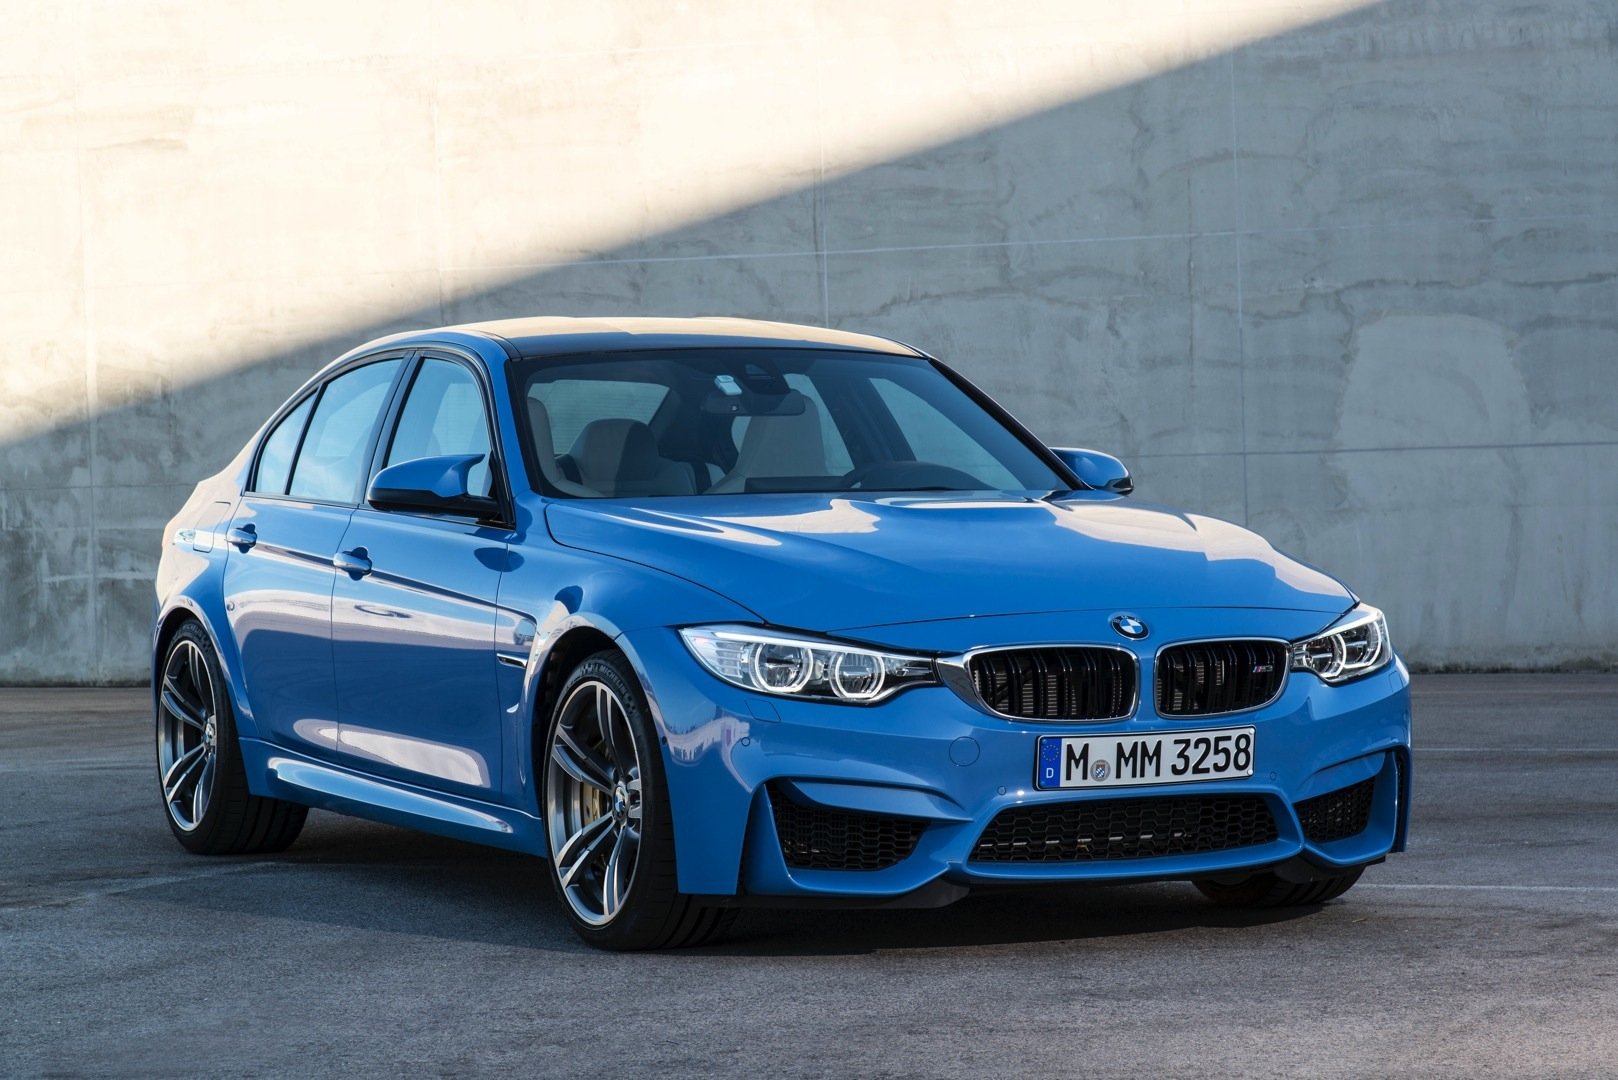 2015 BMW M3 and M4 Wallpapers   photo gallery 1618x1080